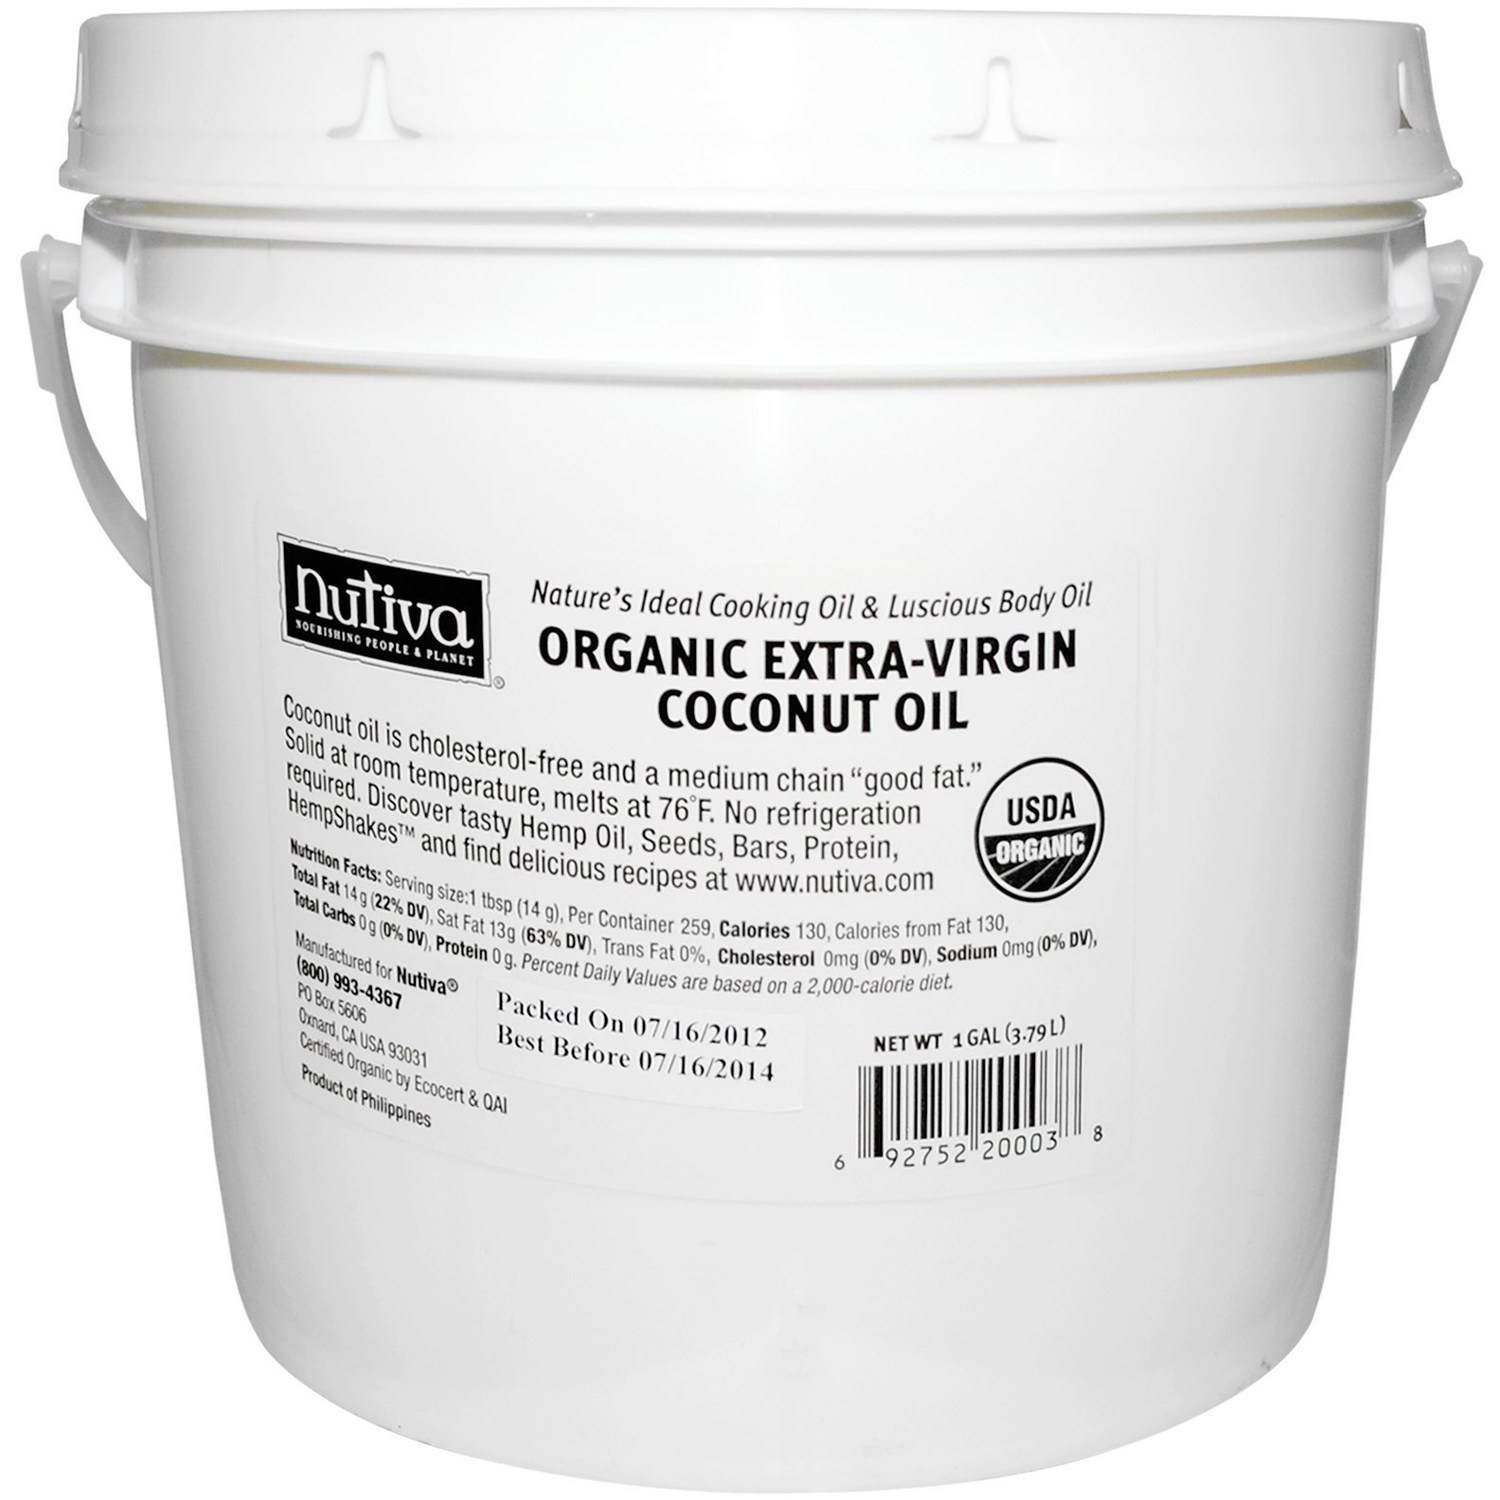 Nutiva Organic Extra-Virgin Coconut Oil, 1 gal